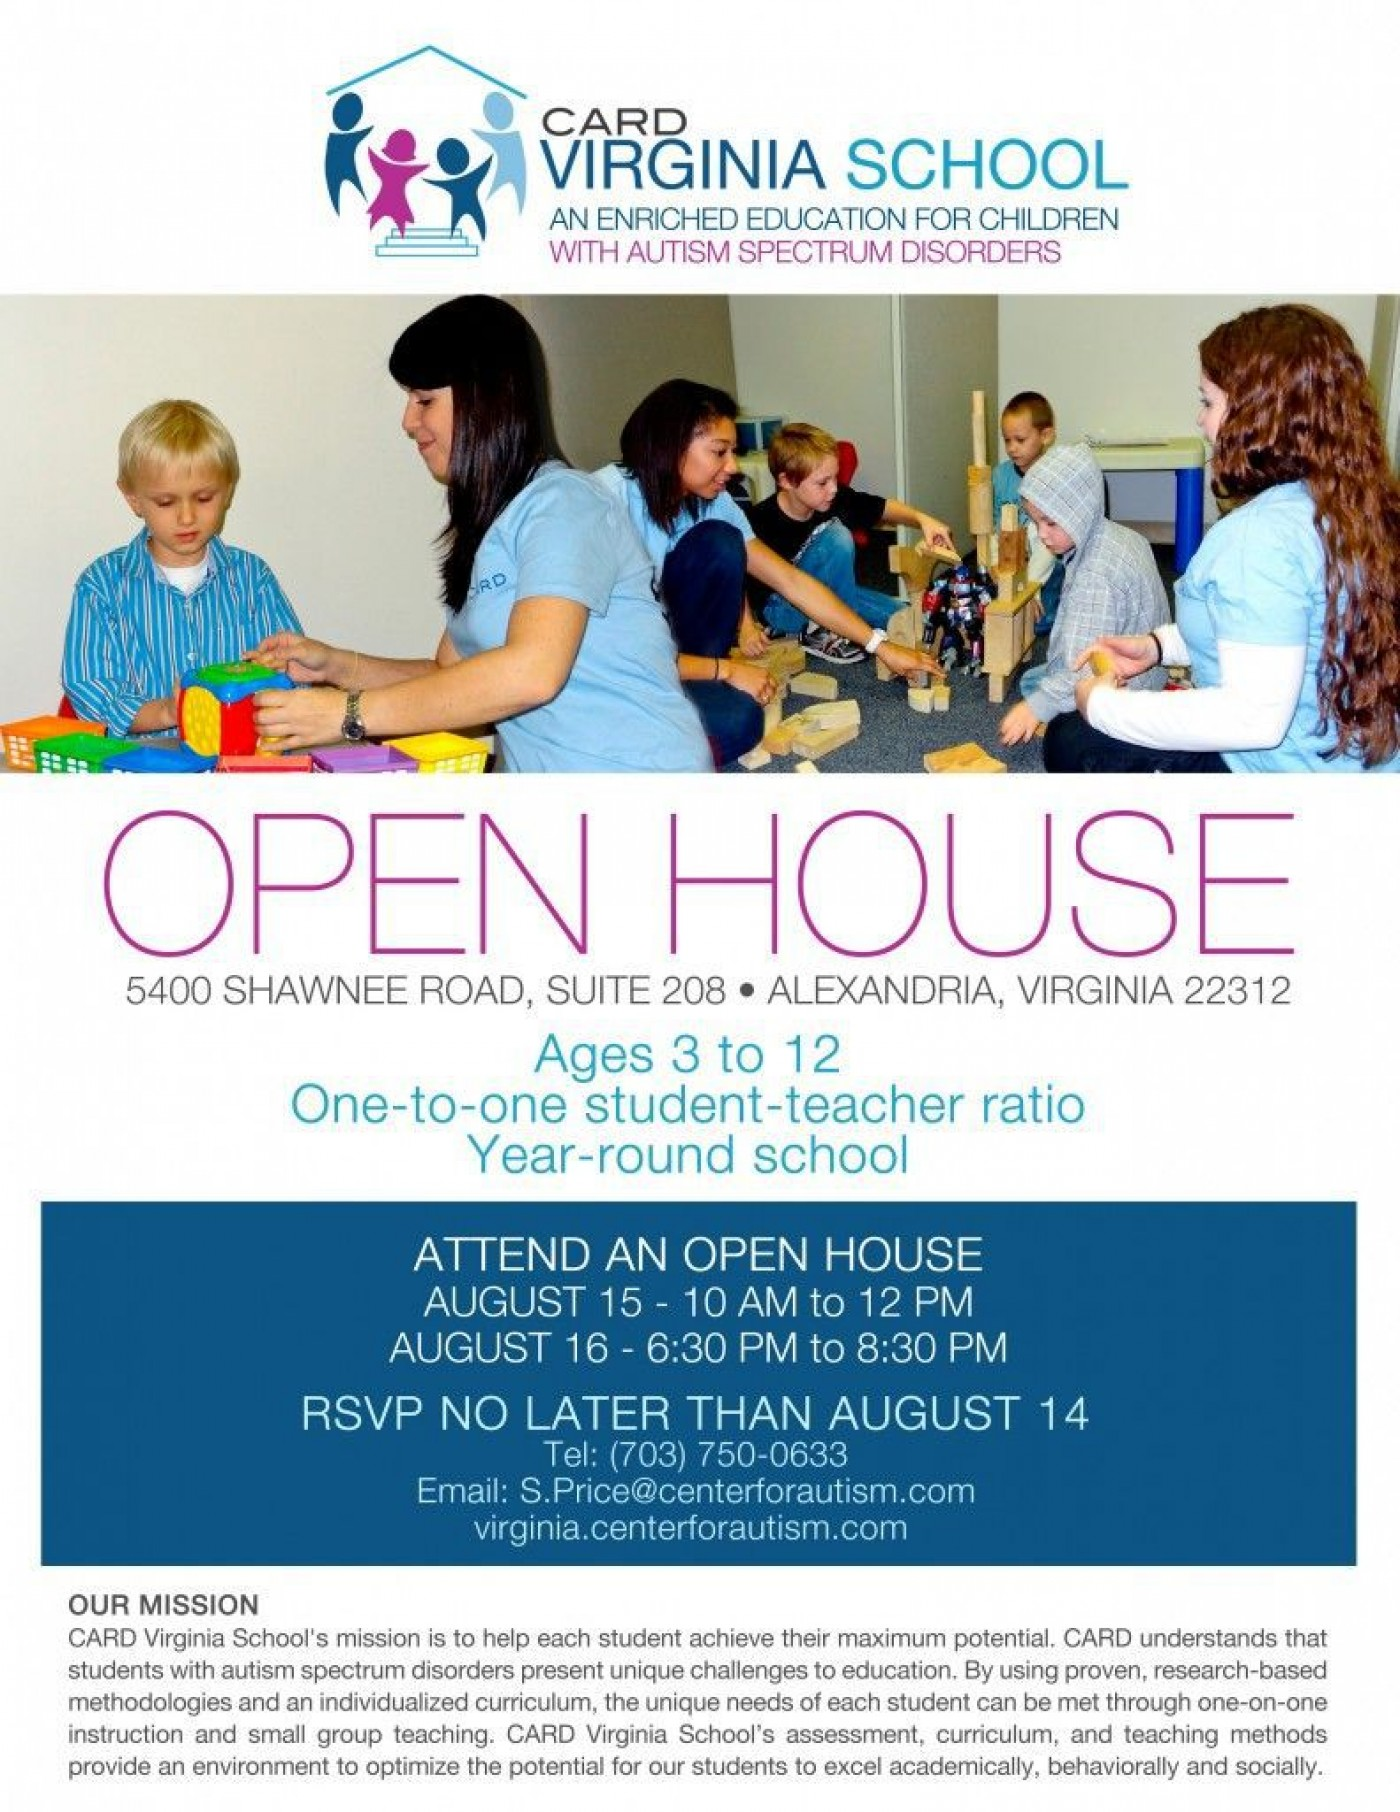 003 Surprising School Open House Flyer Template Image  Free Microsoft1400